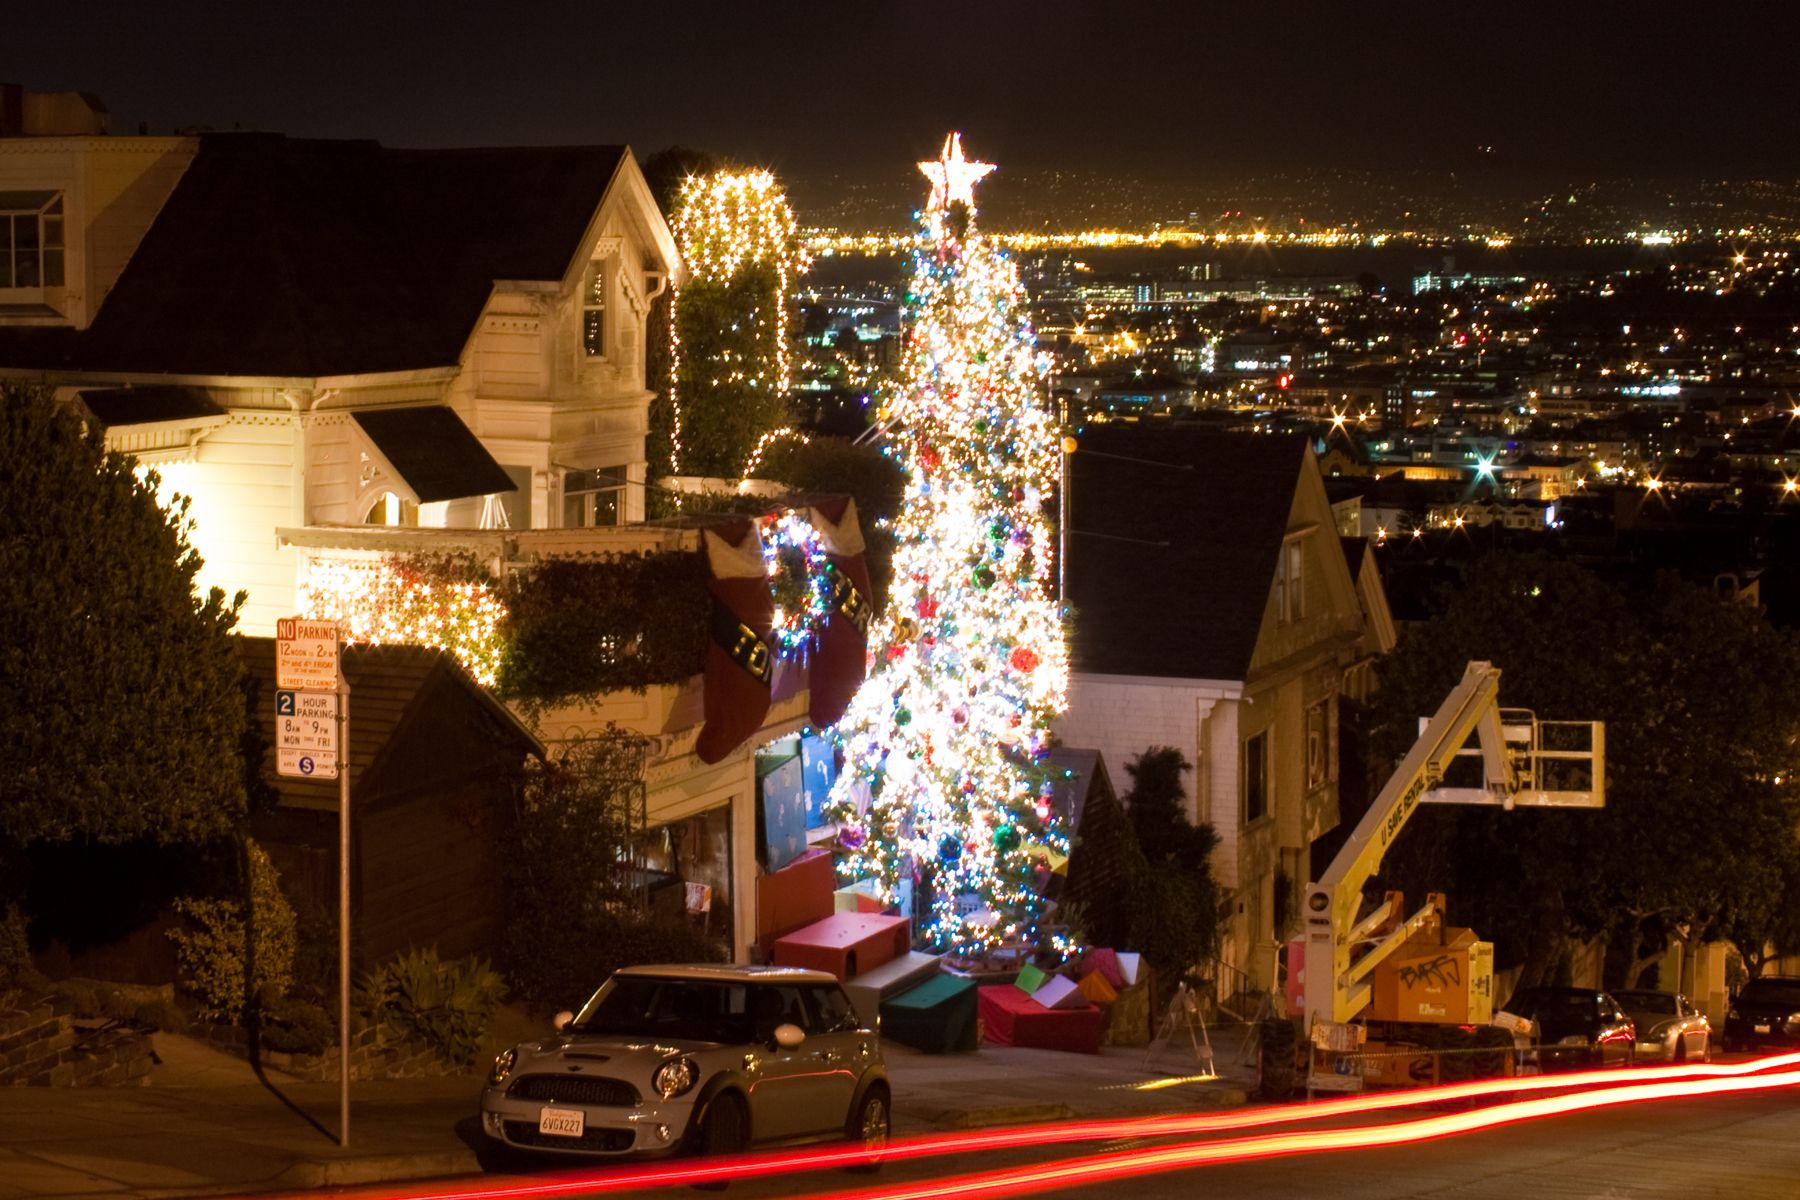 See The Year End Holiday Decorations On Houses And Yards At The Top Of 23rd